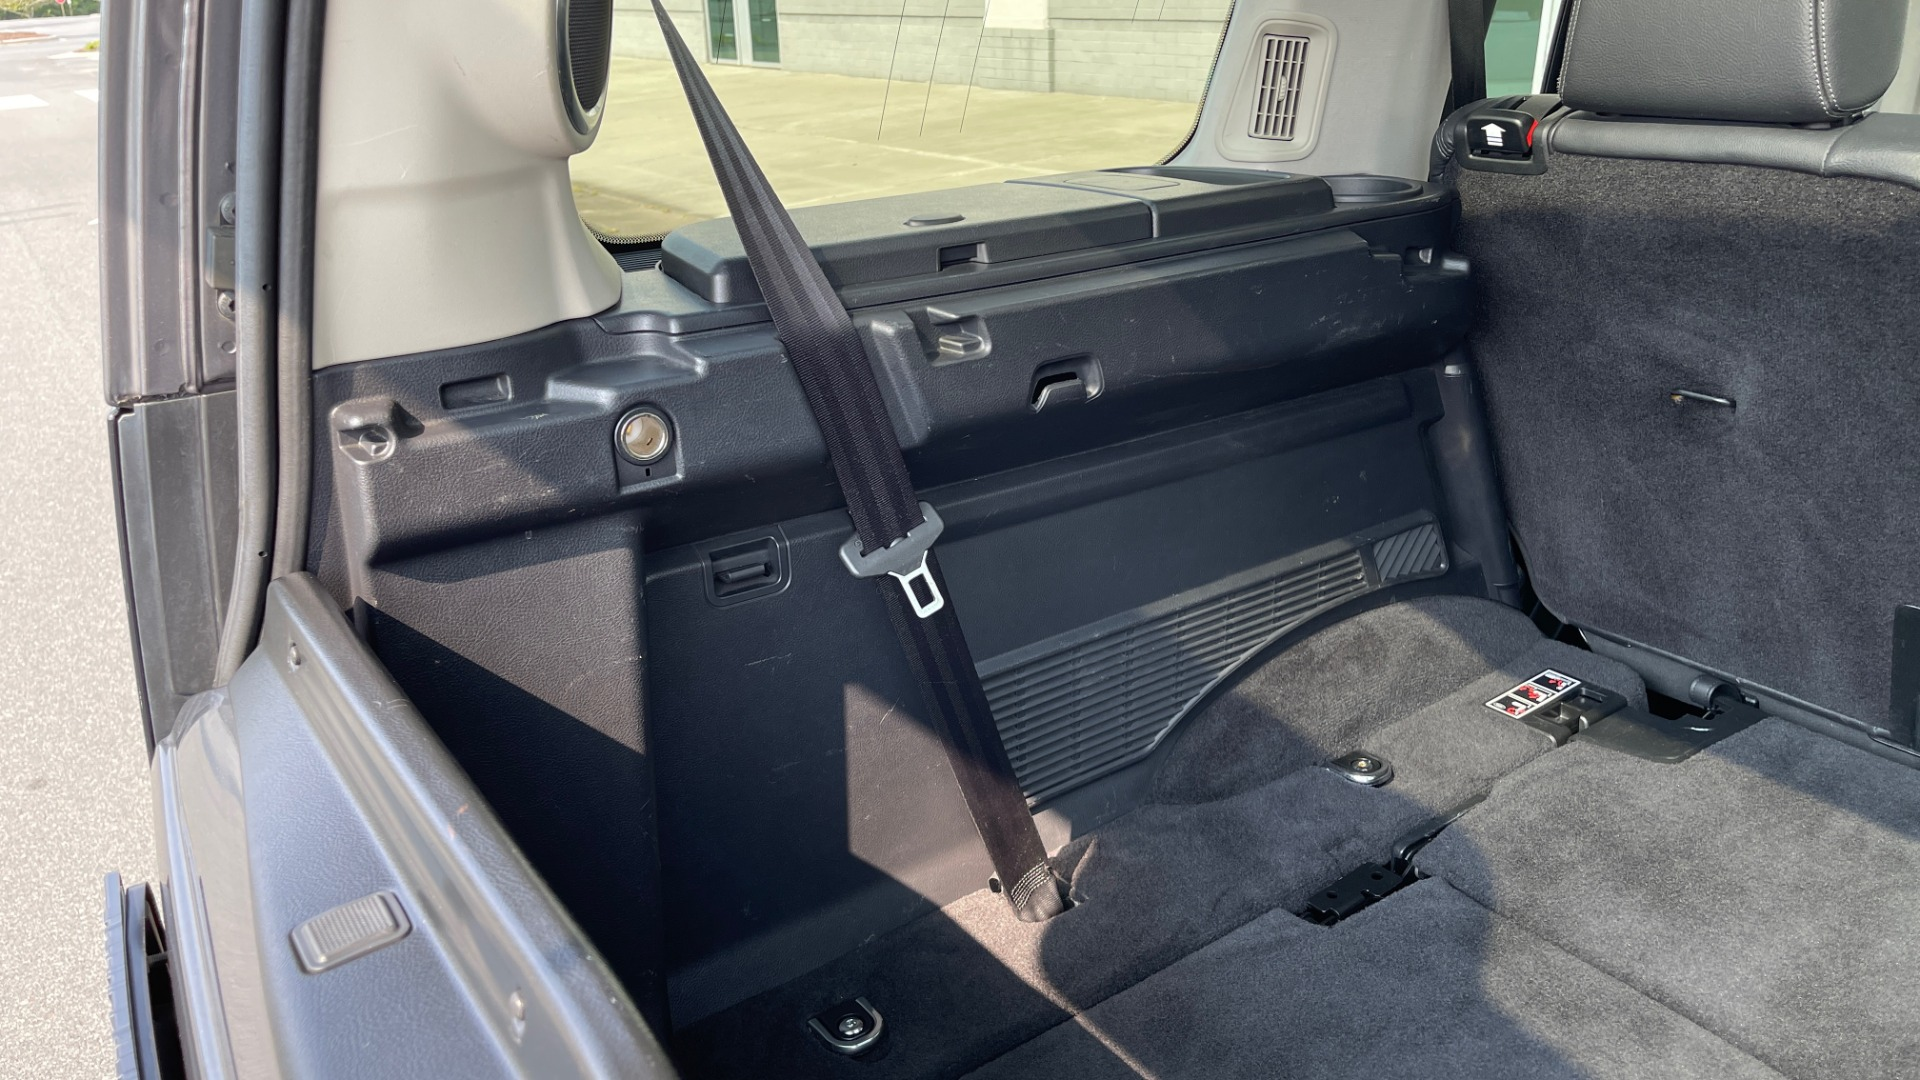 Used 2016 Land Rover LR4 HSE / NAV / SUNROOF / 3-ROW / MERIDIAN SOUND SYS / REARVIEW for sale $30,995 at Formula Imports in Charlotte NC 28227 16